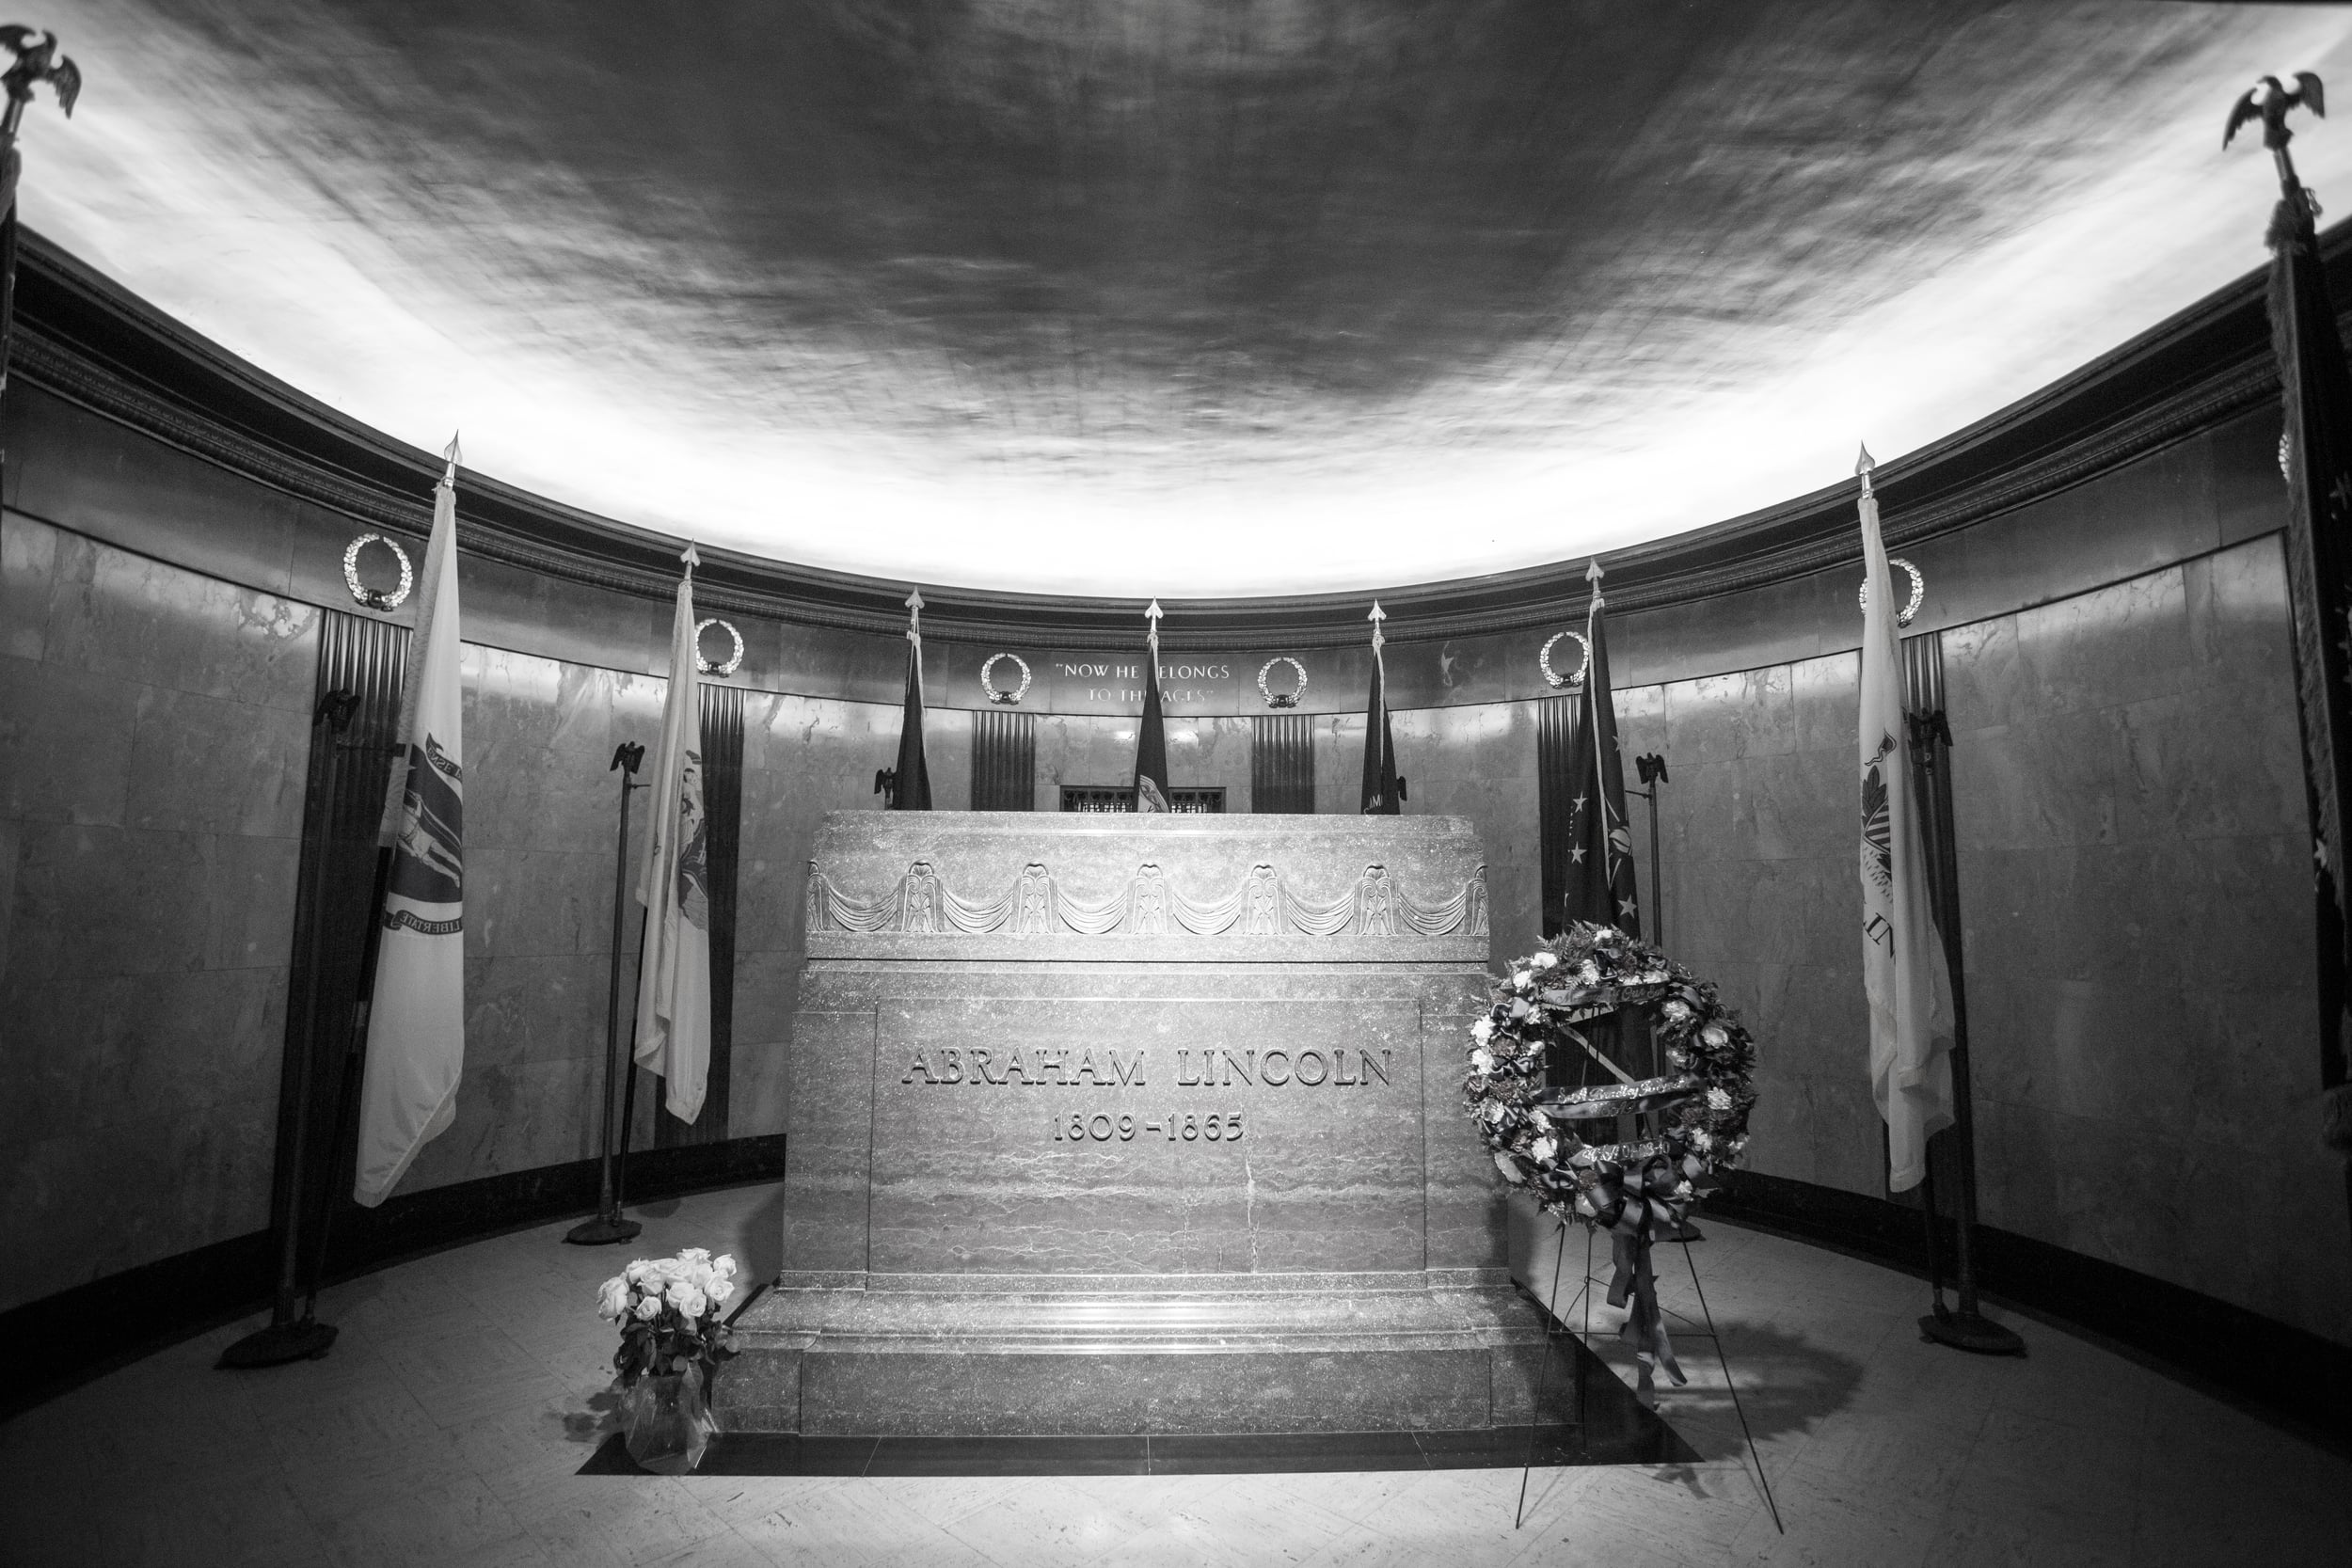 President Lincoln's Final Resting Place